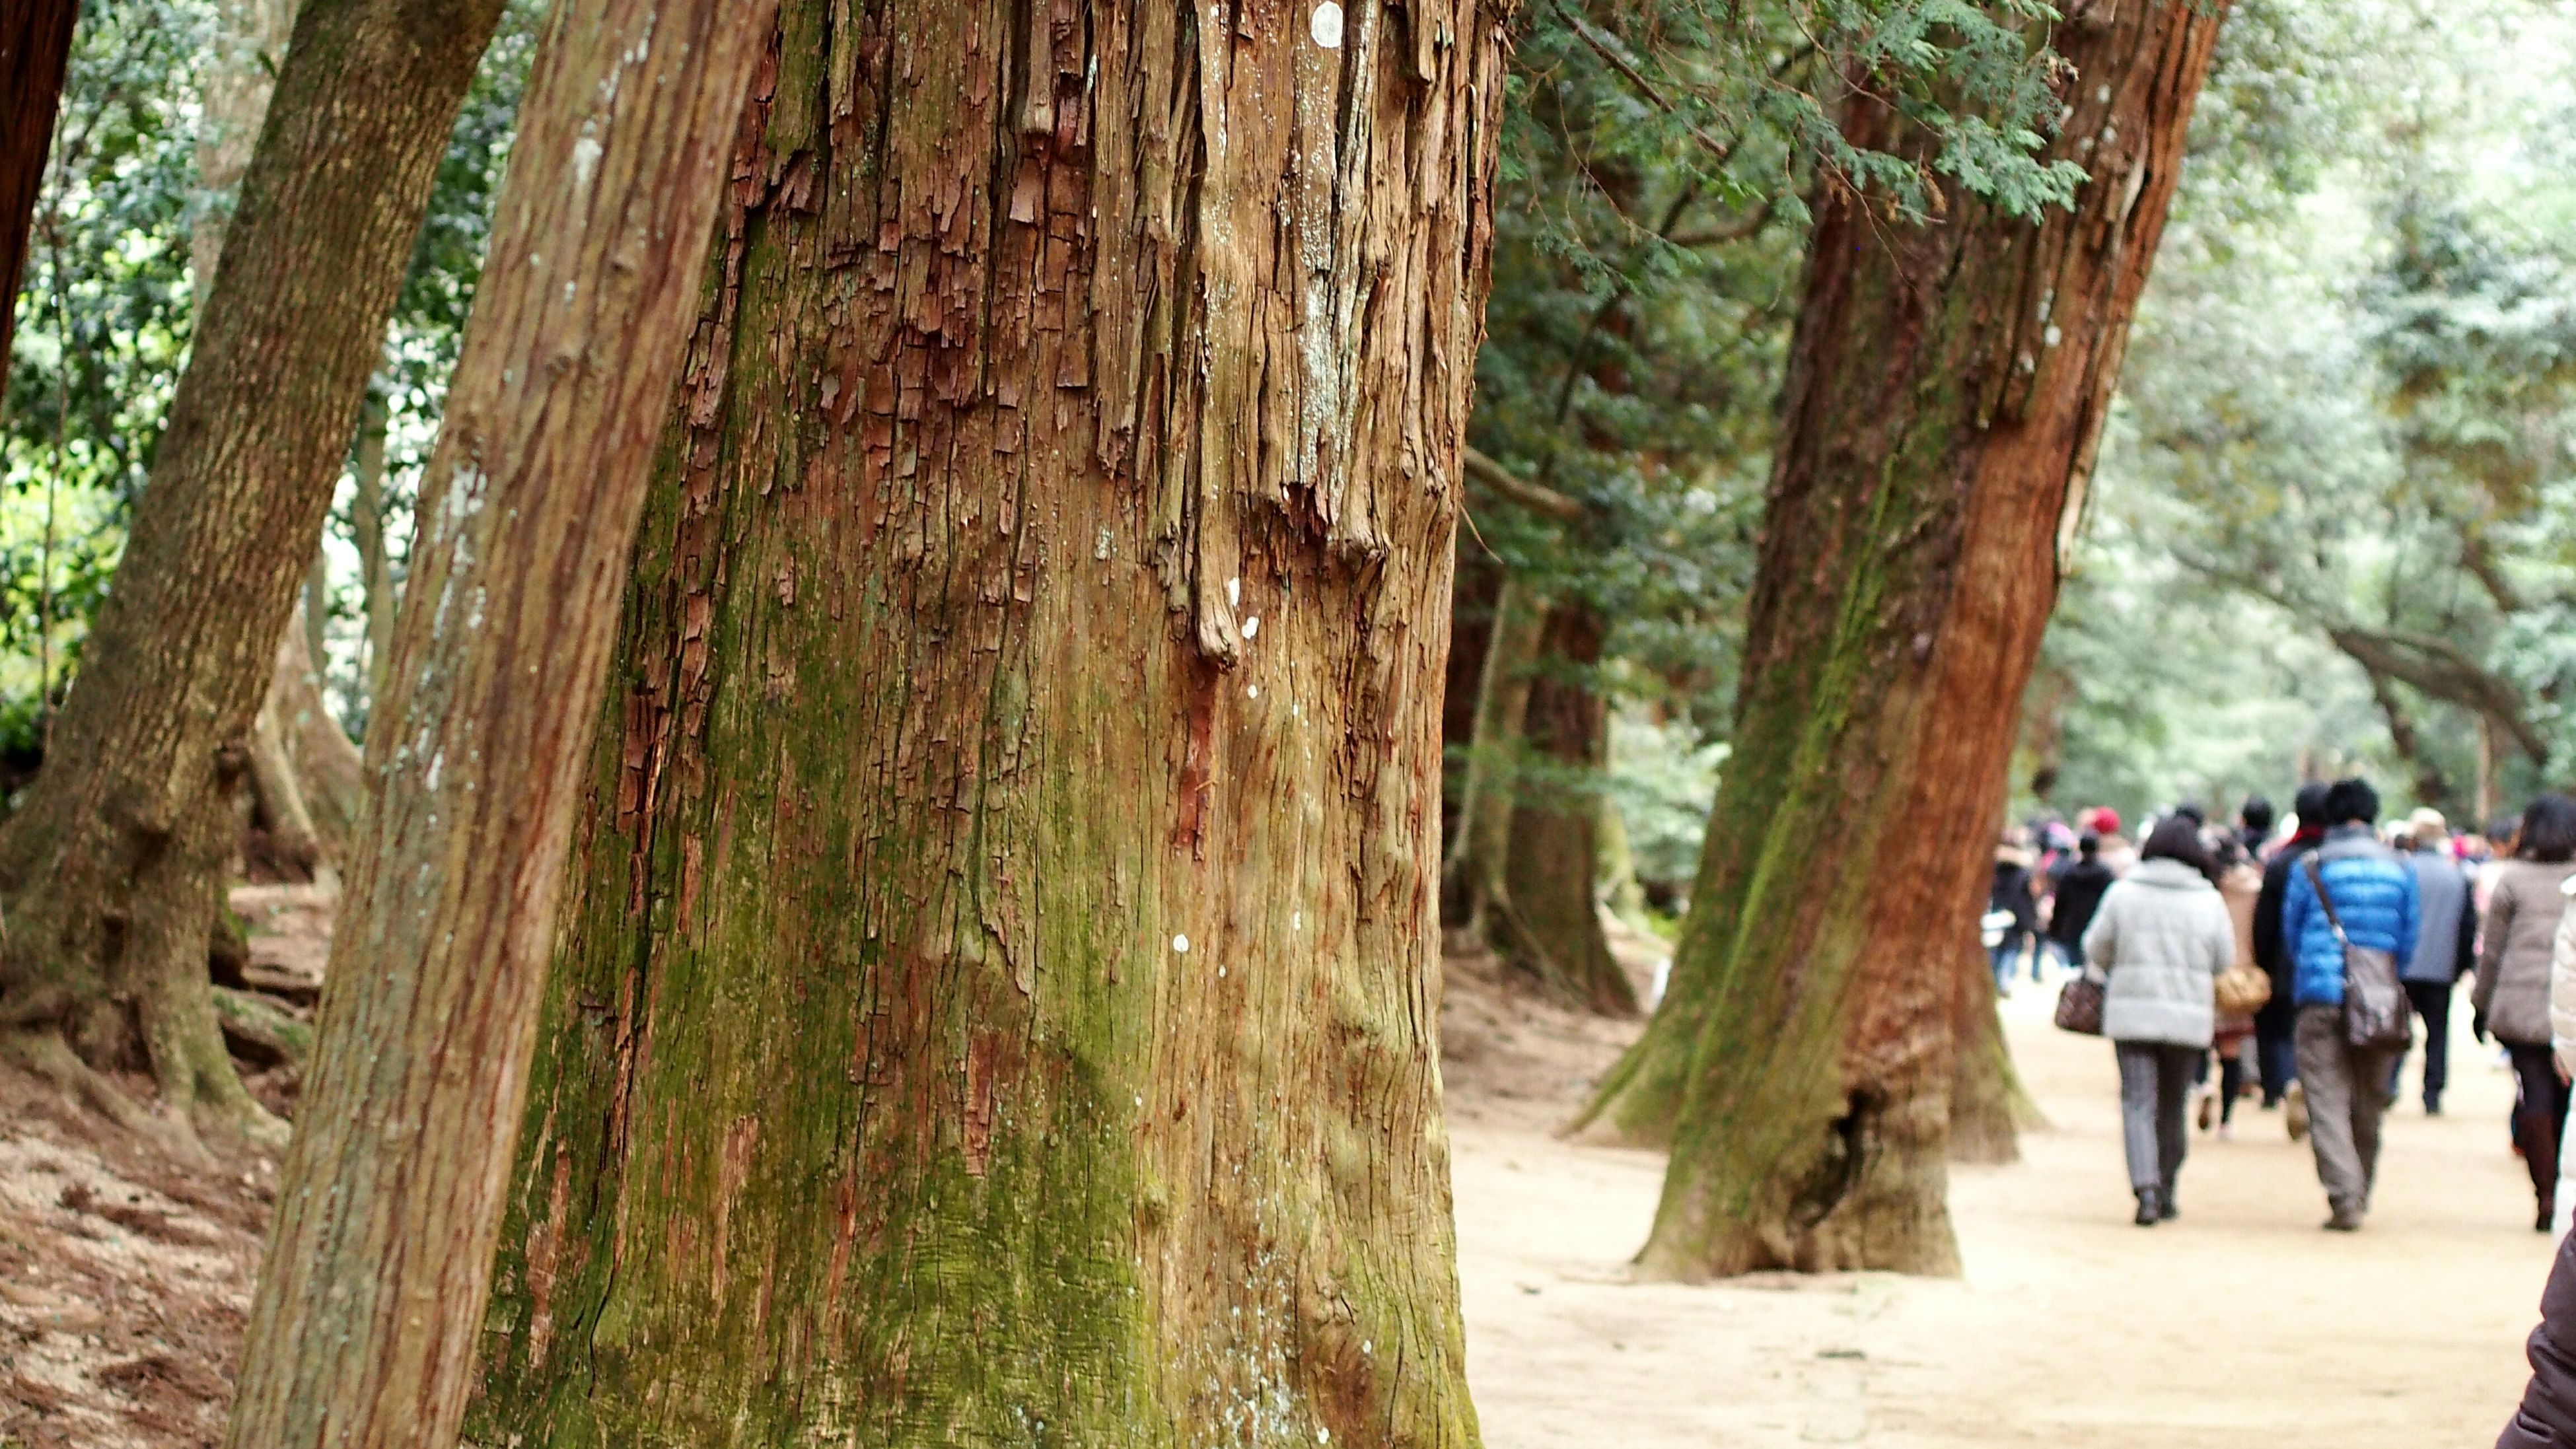 tree, tree trunk, lifestyles, leisure activity, walking, men, person, rear view, full length, casual clothing, wood - material, standing, forest, day, nature, outdoors, growth, footpath